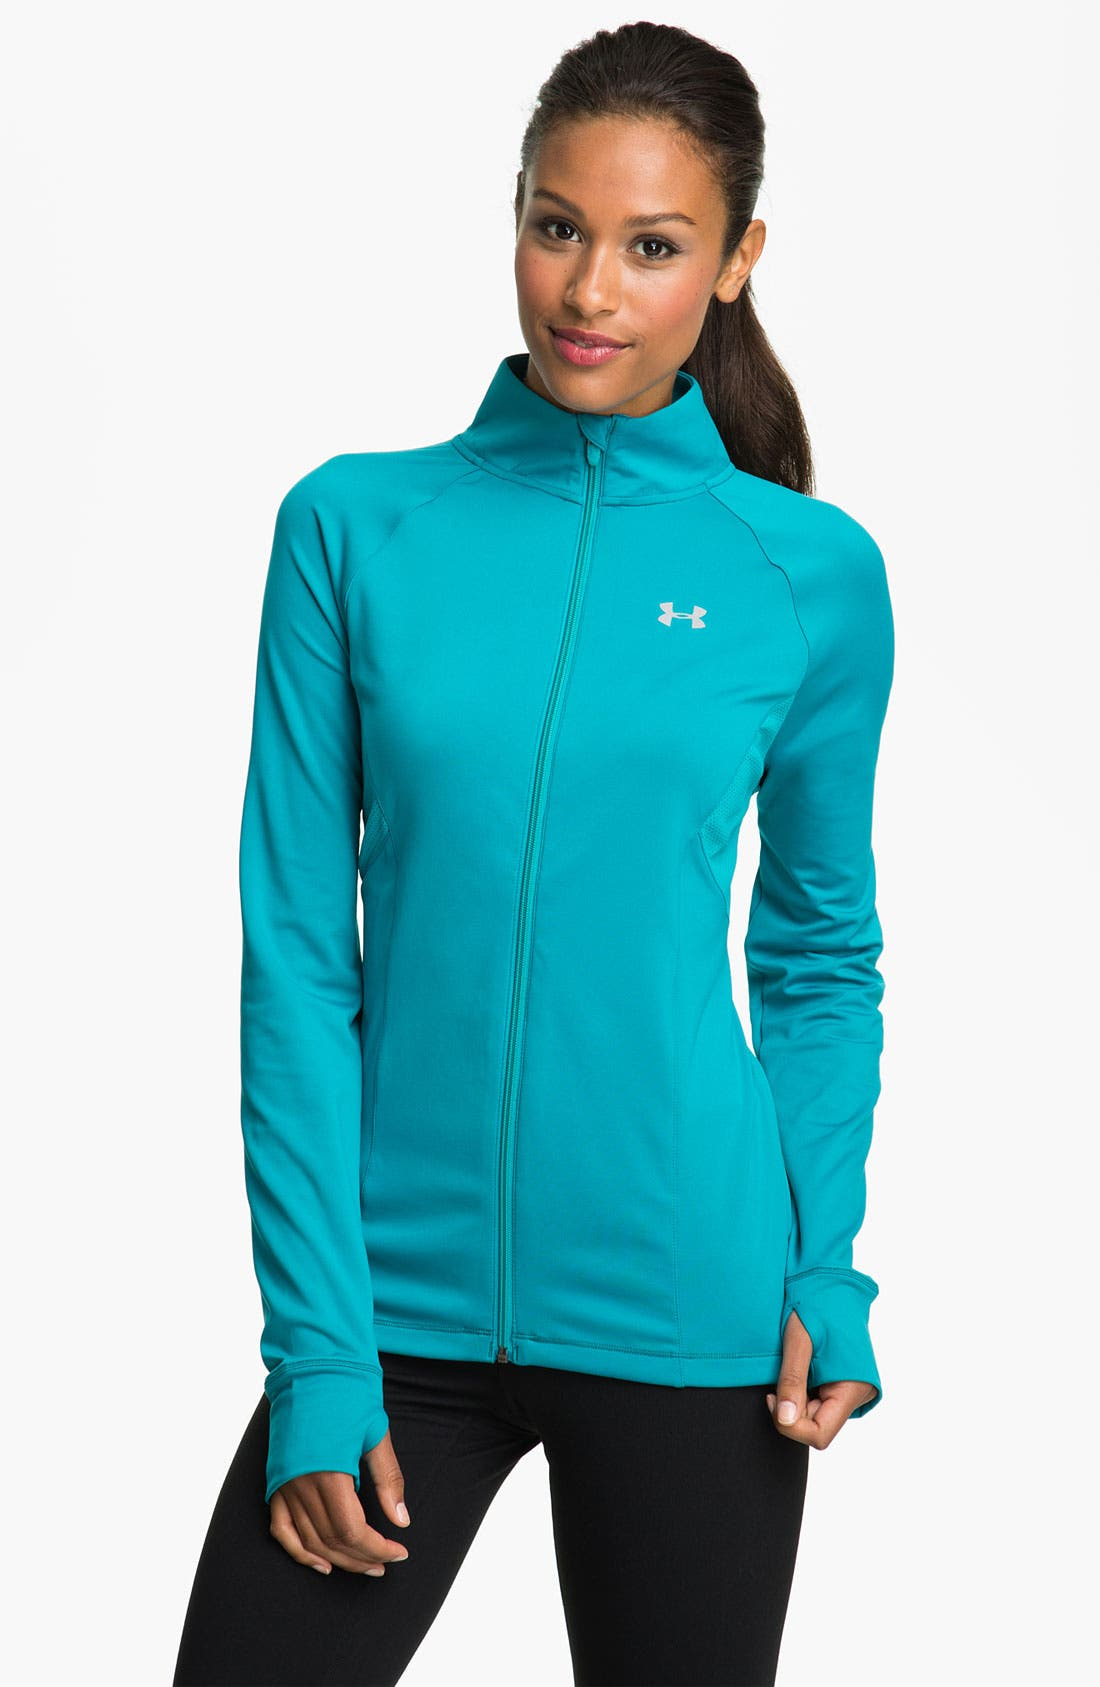 Alternate Image 1 Selected - Under Armour Escape Jacket